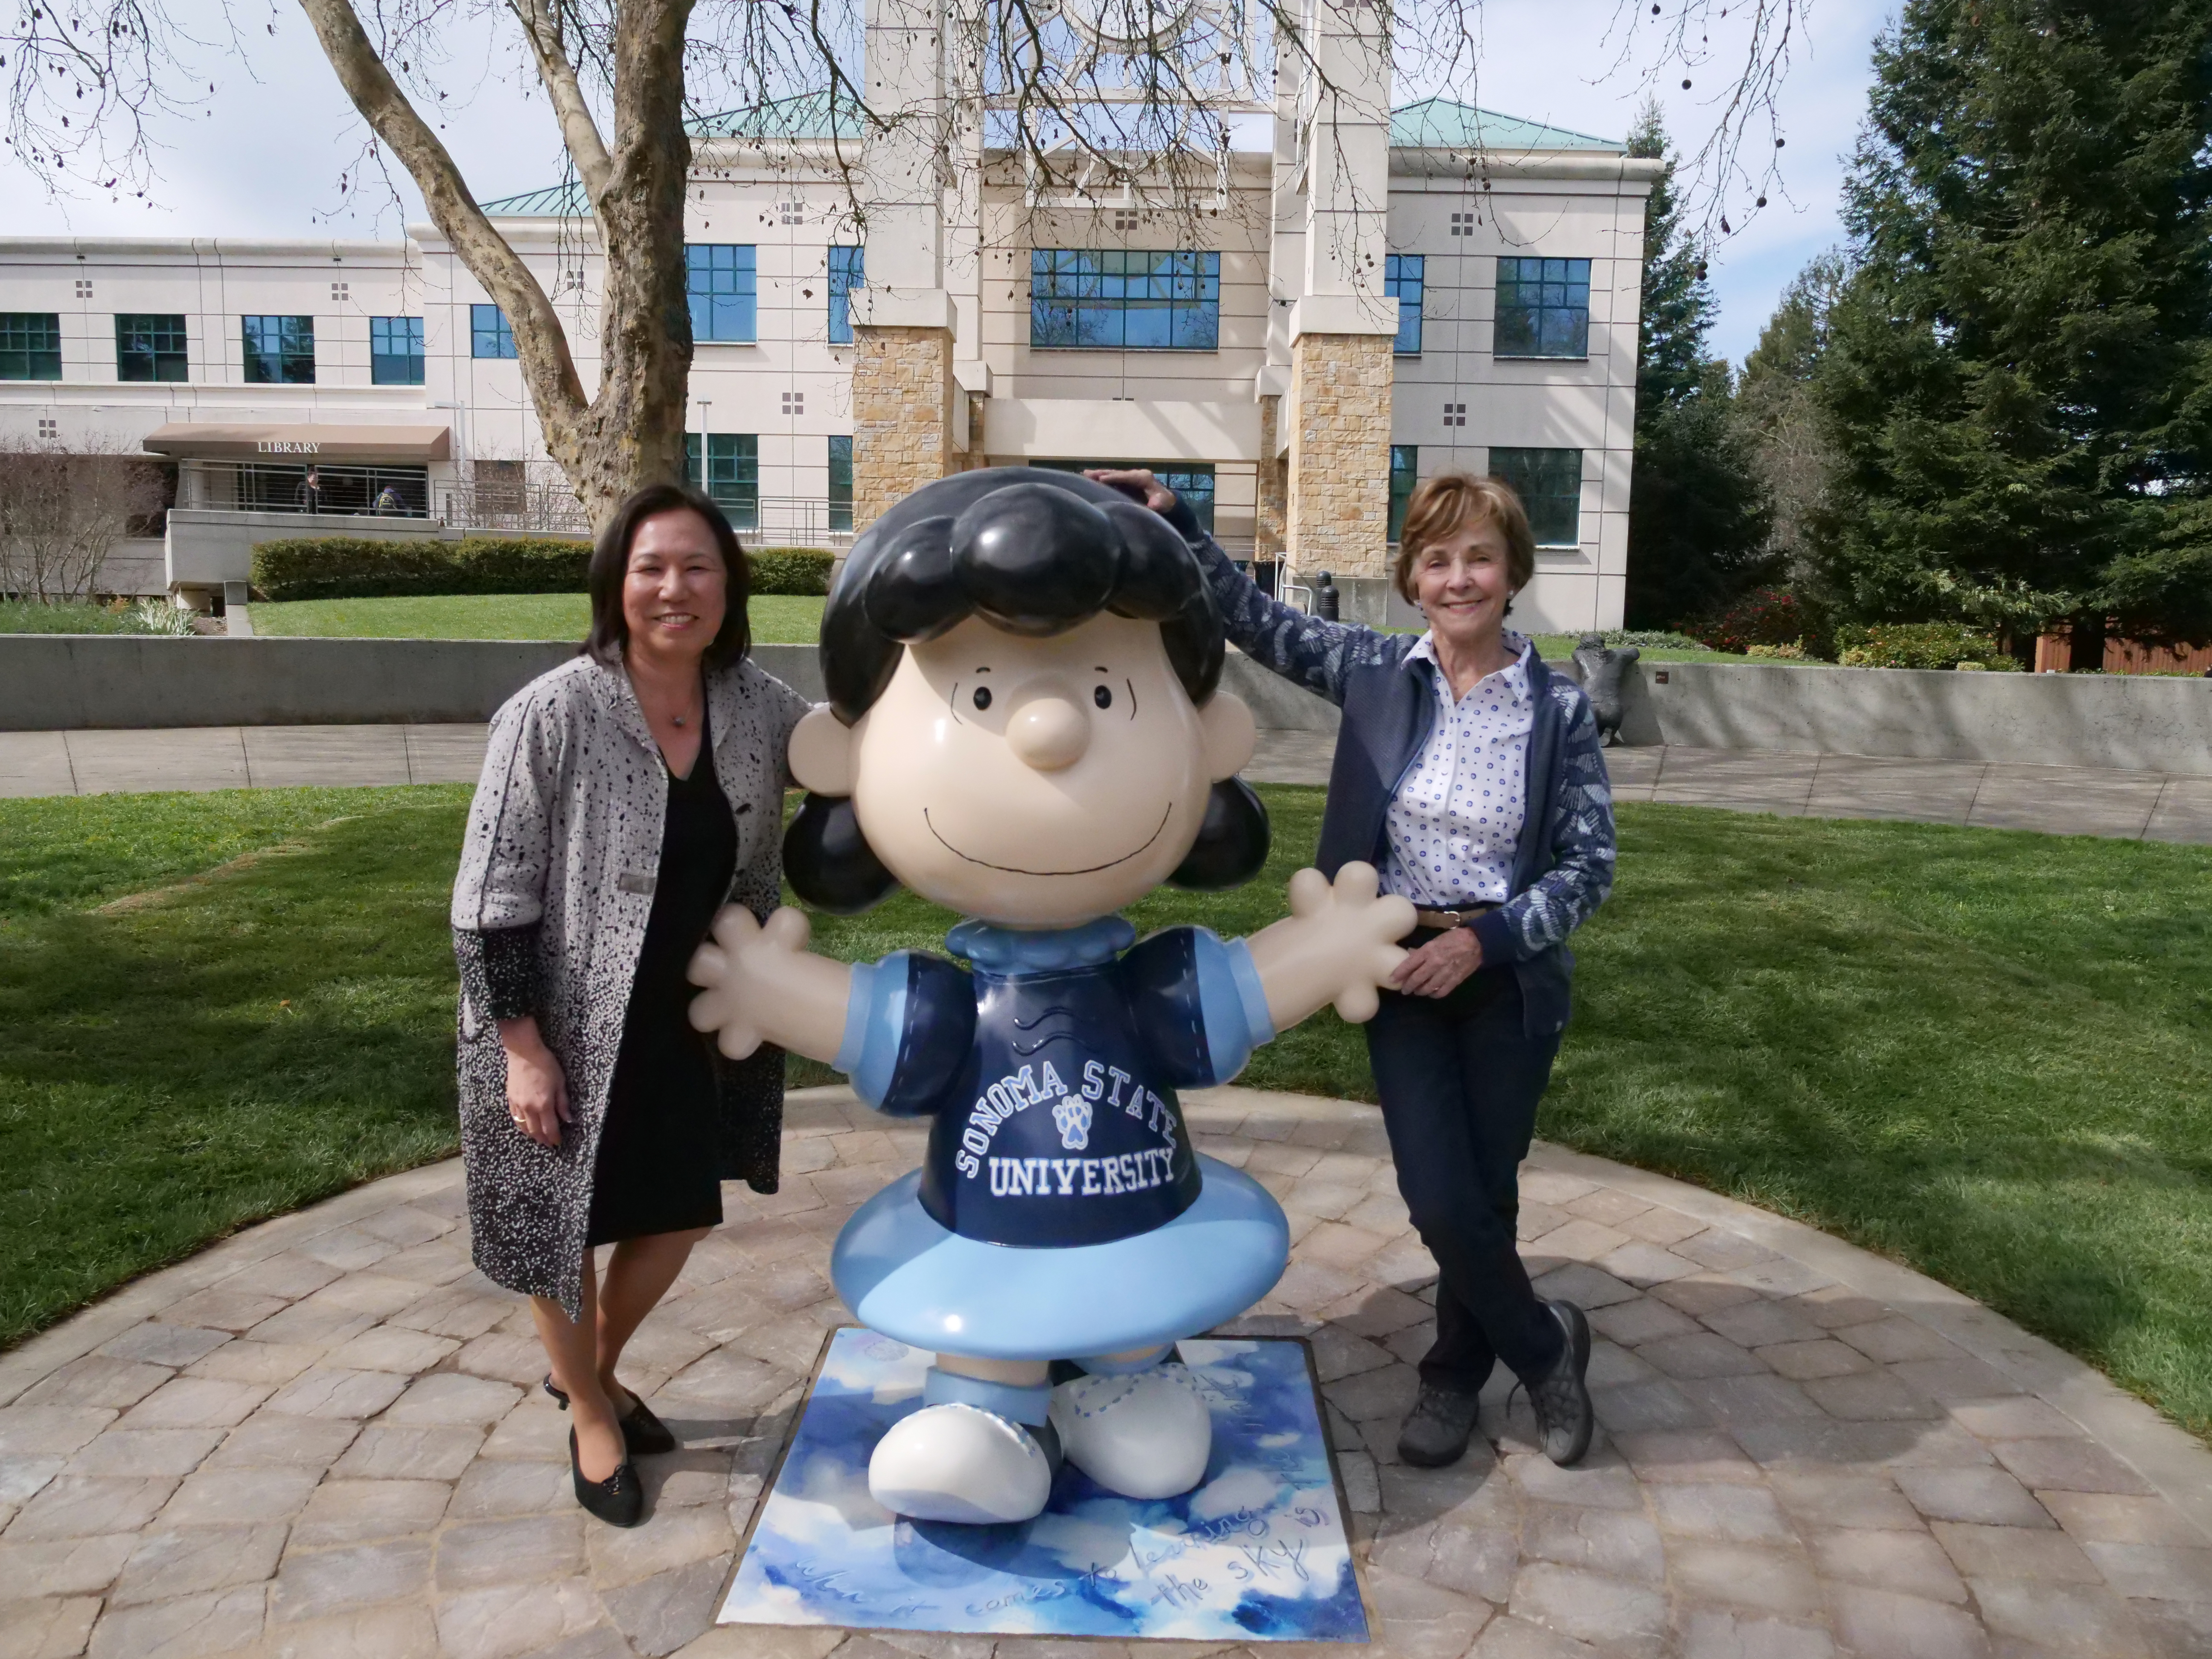 Peanuts' character Lucy statue unveiled at Sonoma State